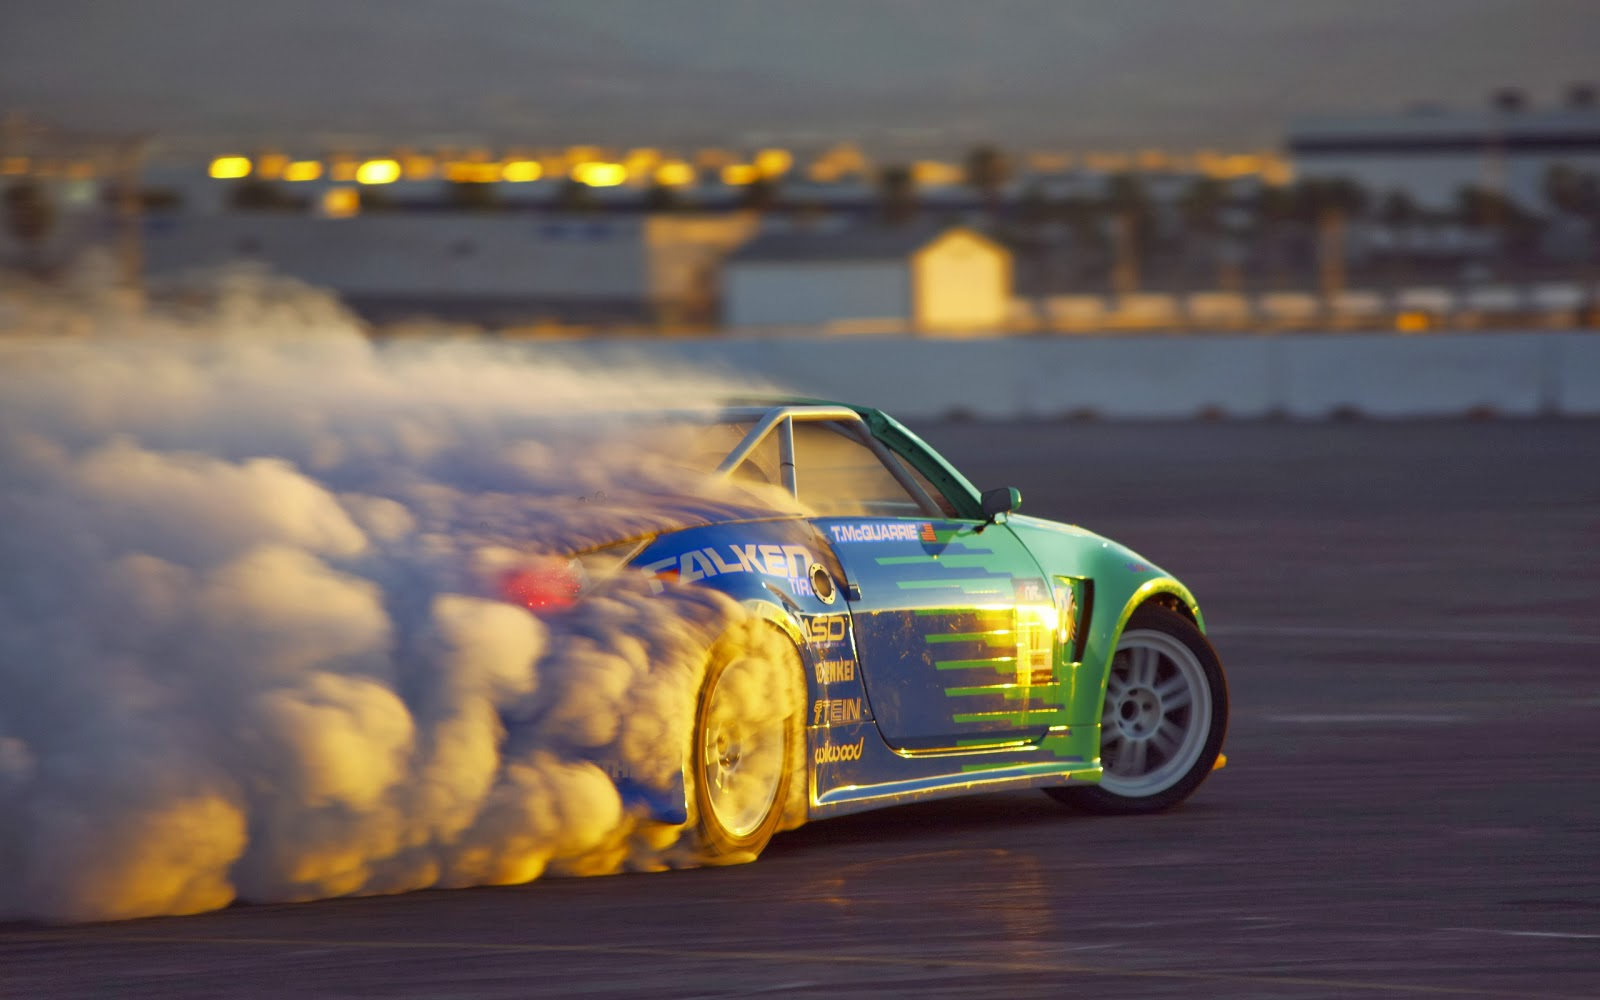 https://2.bp.blogspot.com/-buVzzDQTvJc/UxZOYXqyLSI/AAAAAAAAYnU/E_k-wHUl6Rc/s1600/car-drift-sunset-burnout.jpg